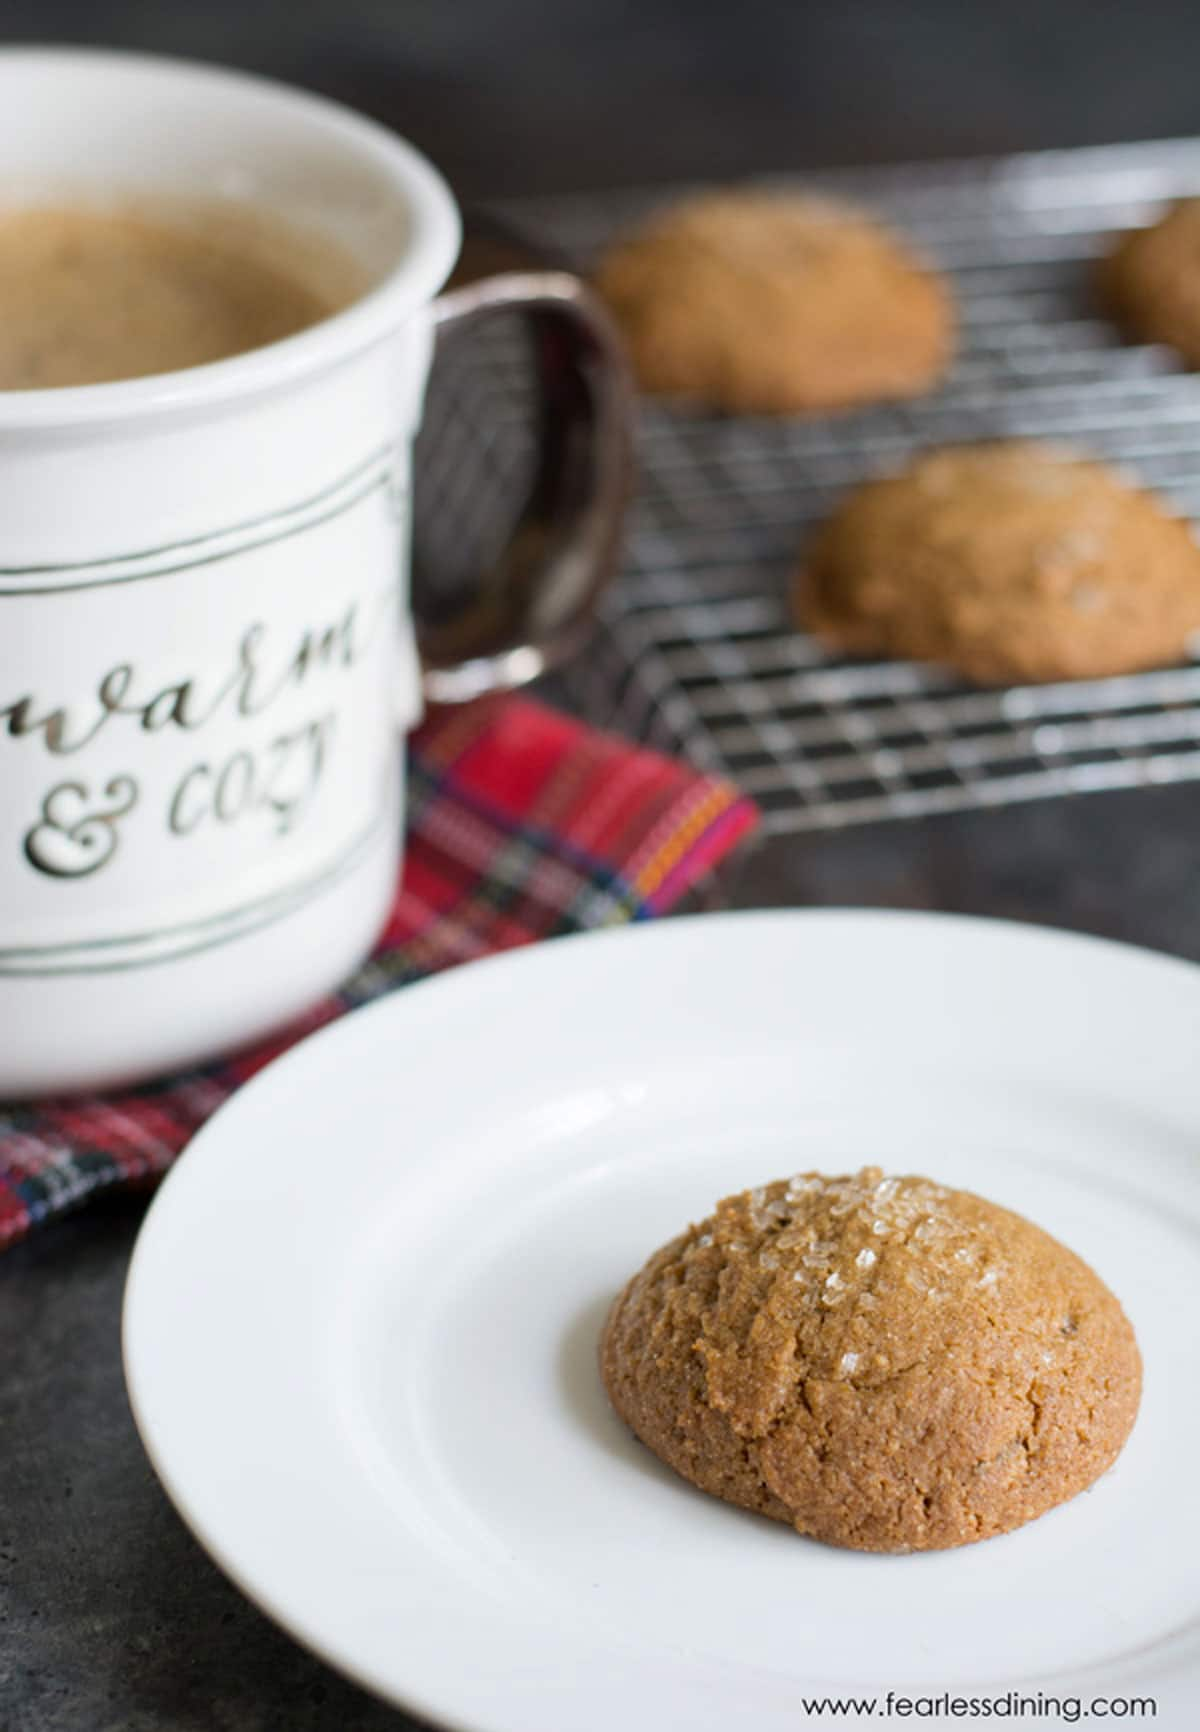 a ginger cookie on a plate next to a mug of coffee